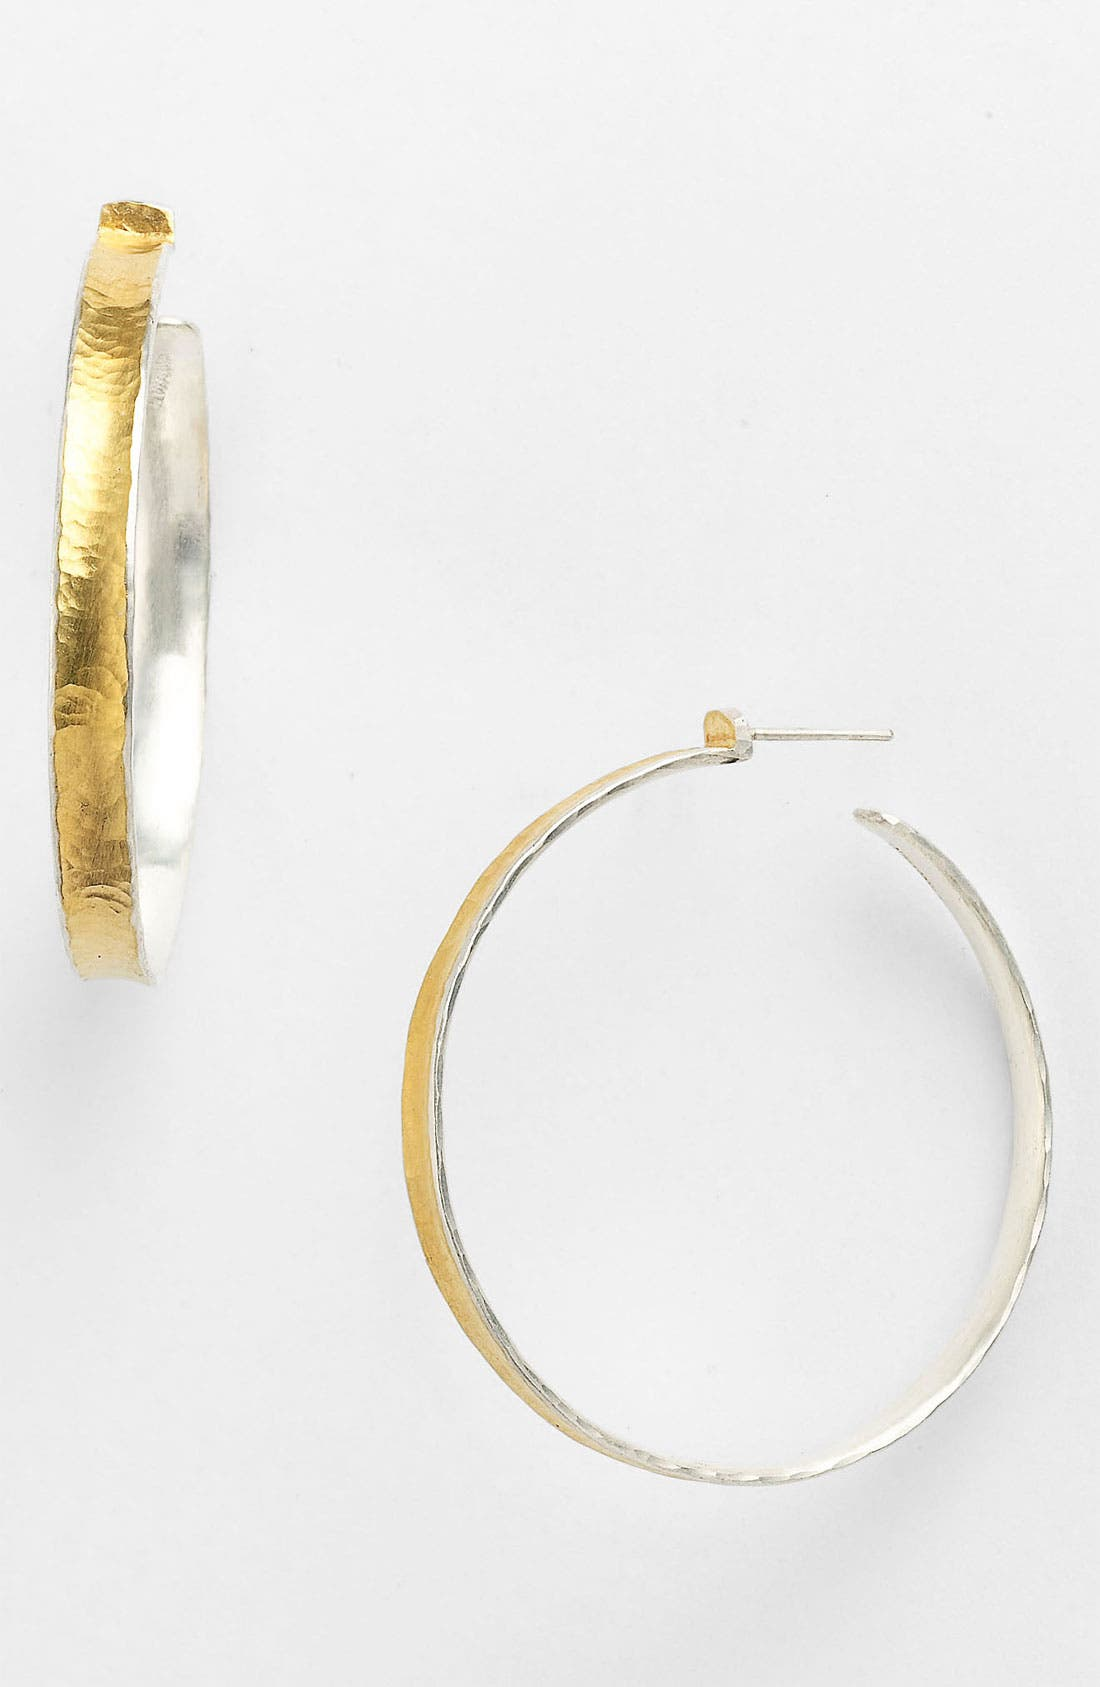 Main Image - Gurhan 'Hourglass' Hoop Earrings